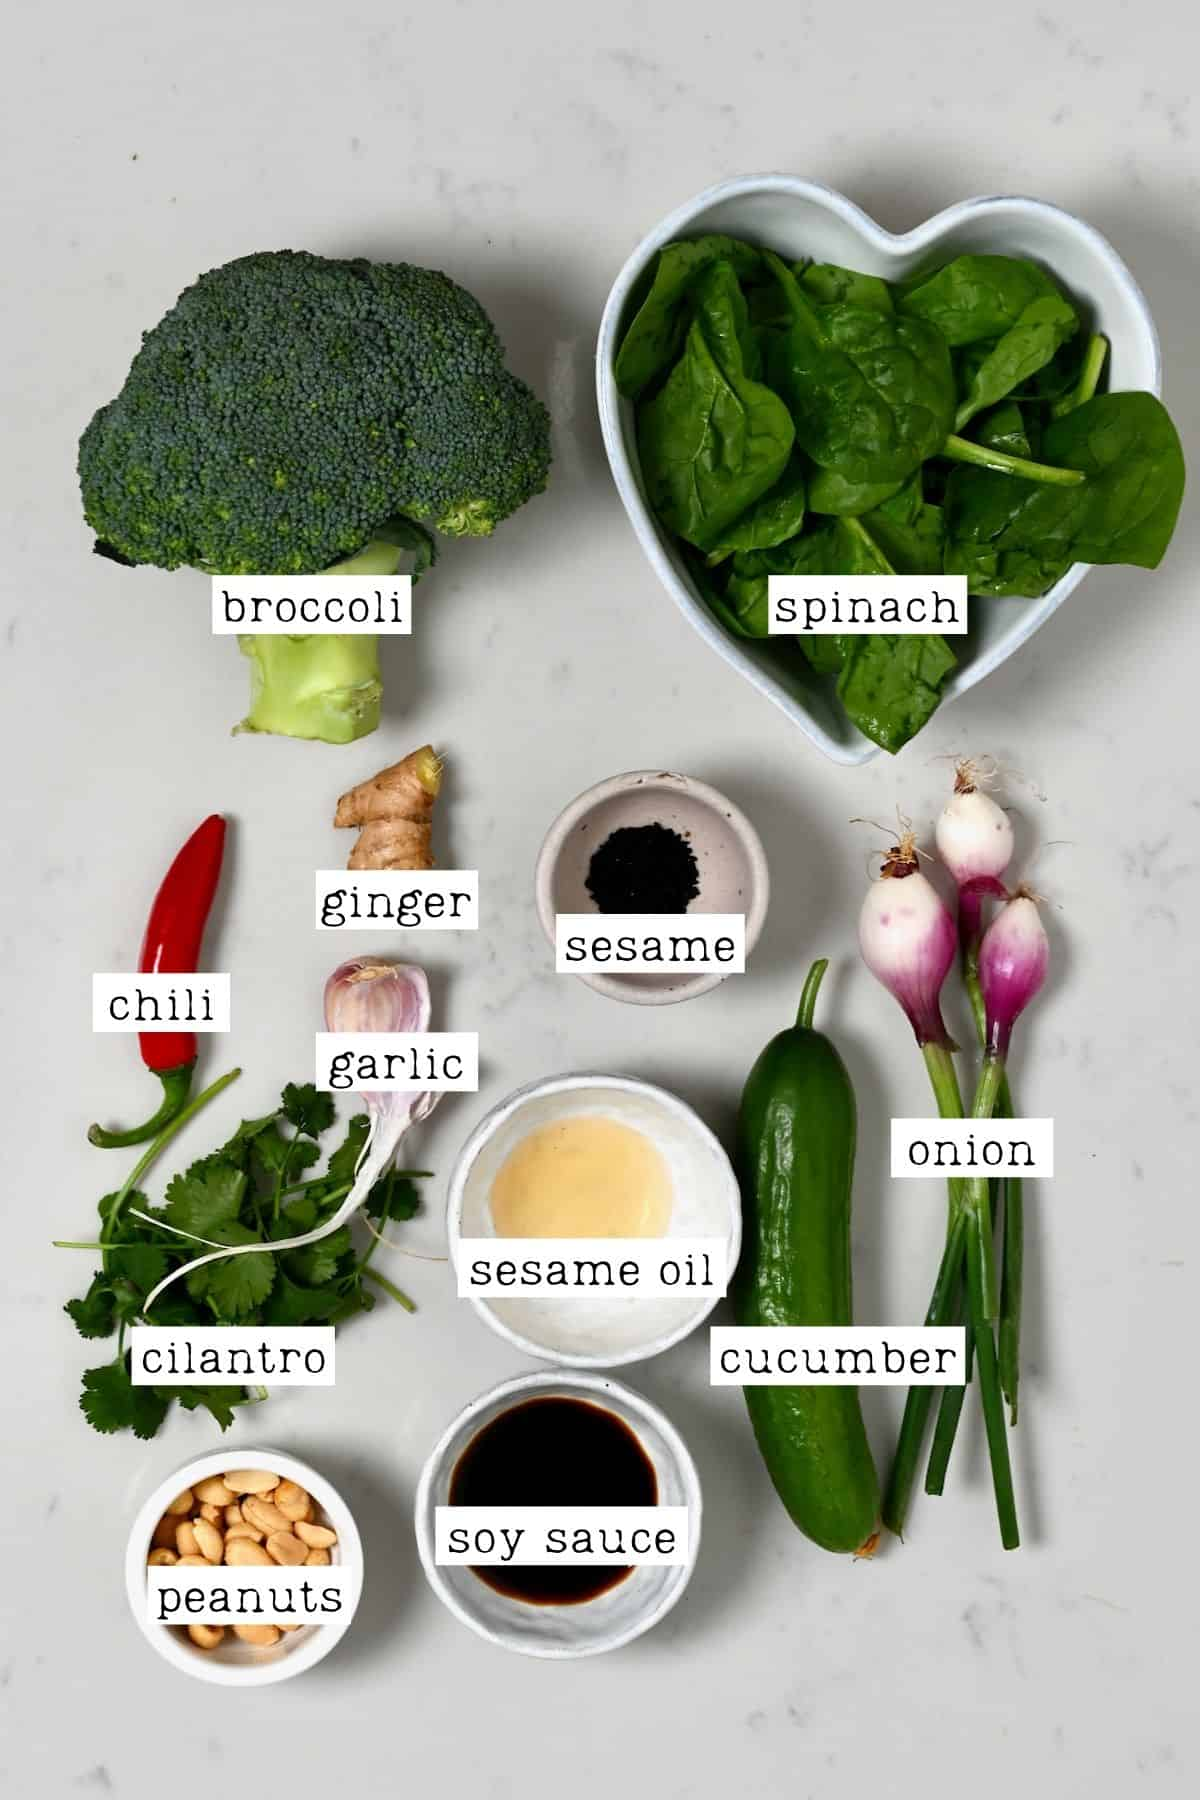 Ingredients for Asian Broccoli Salad